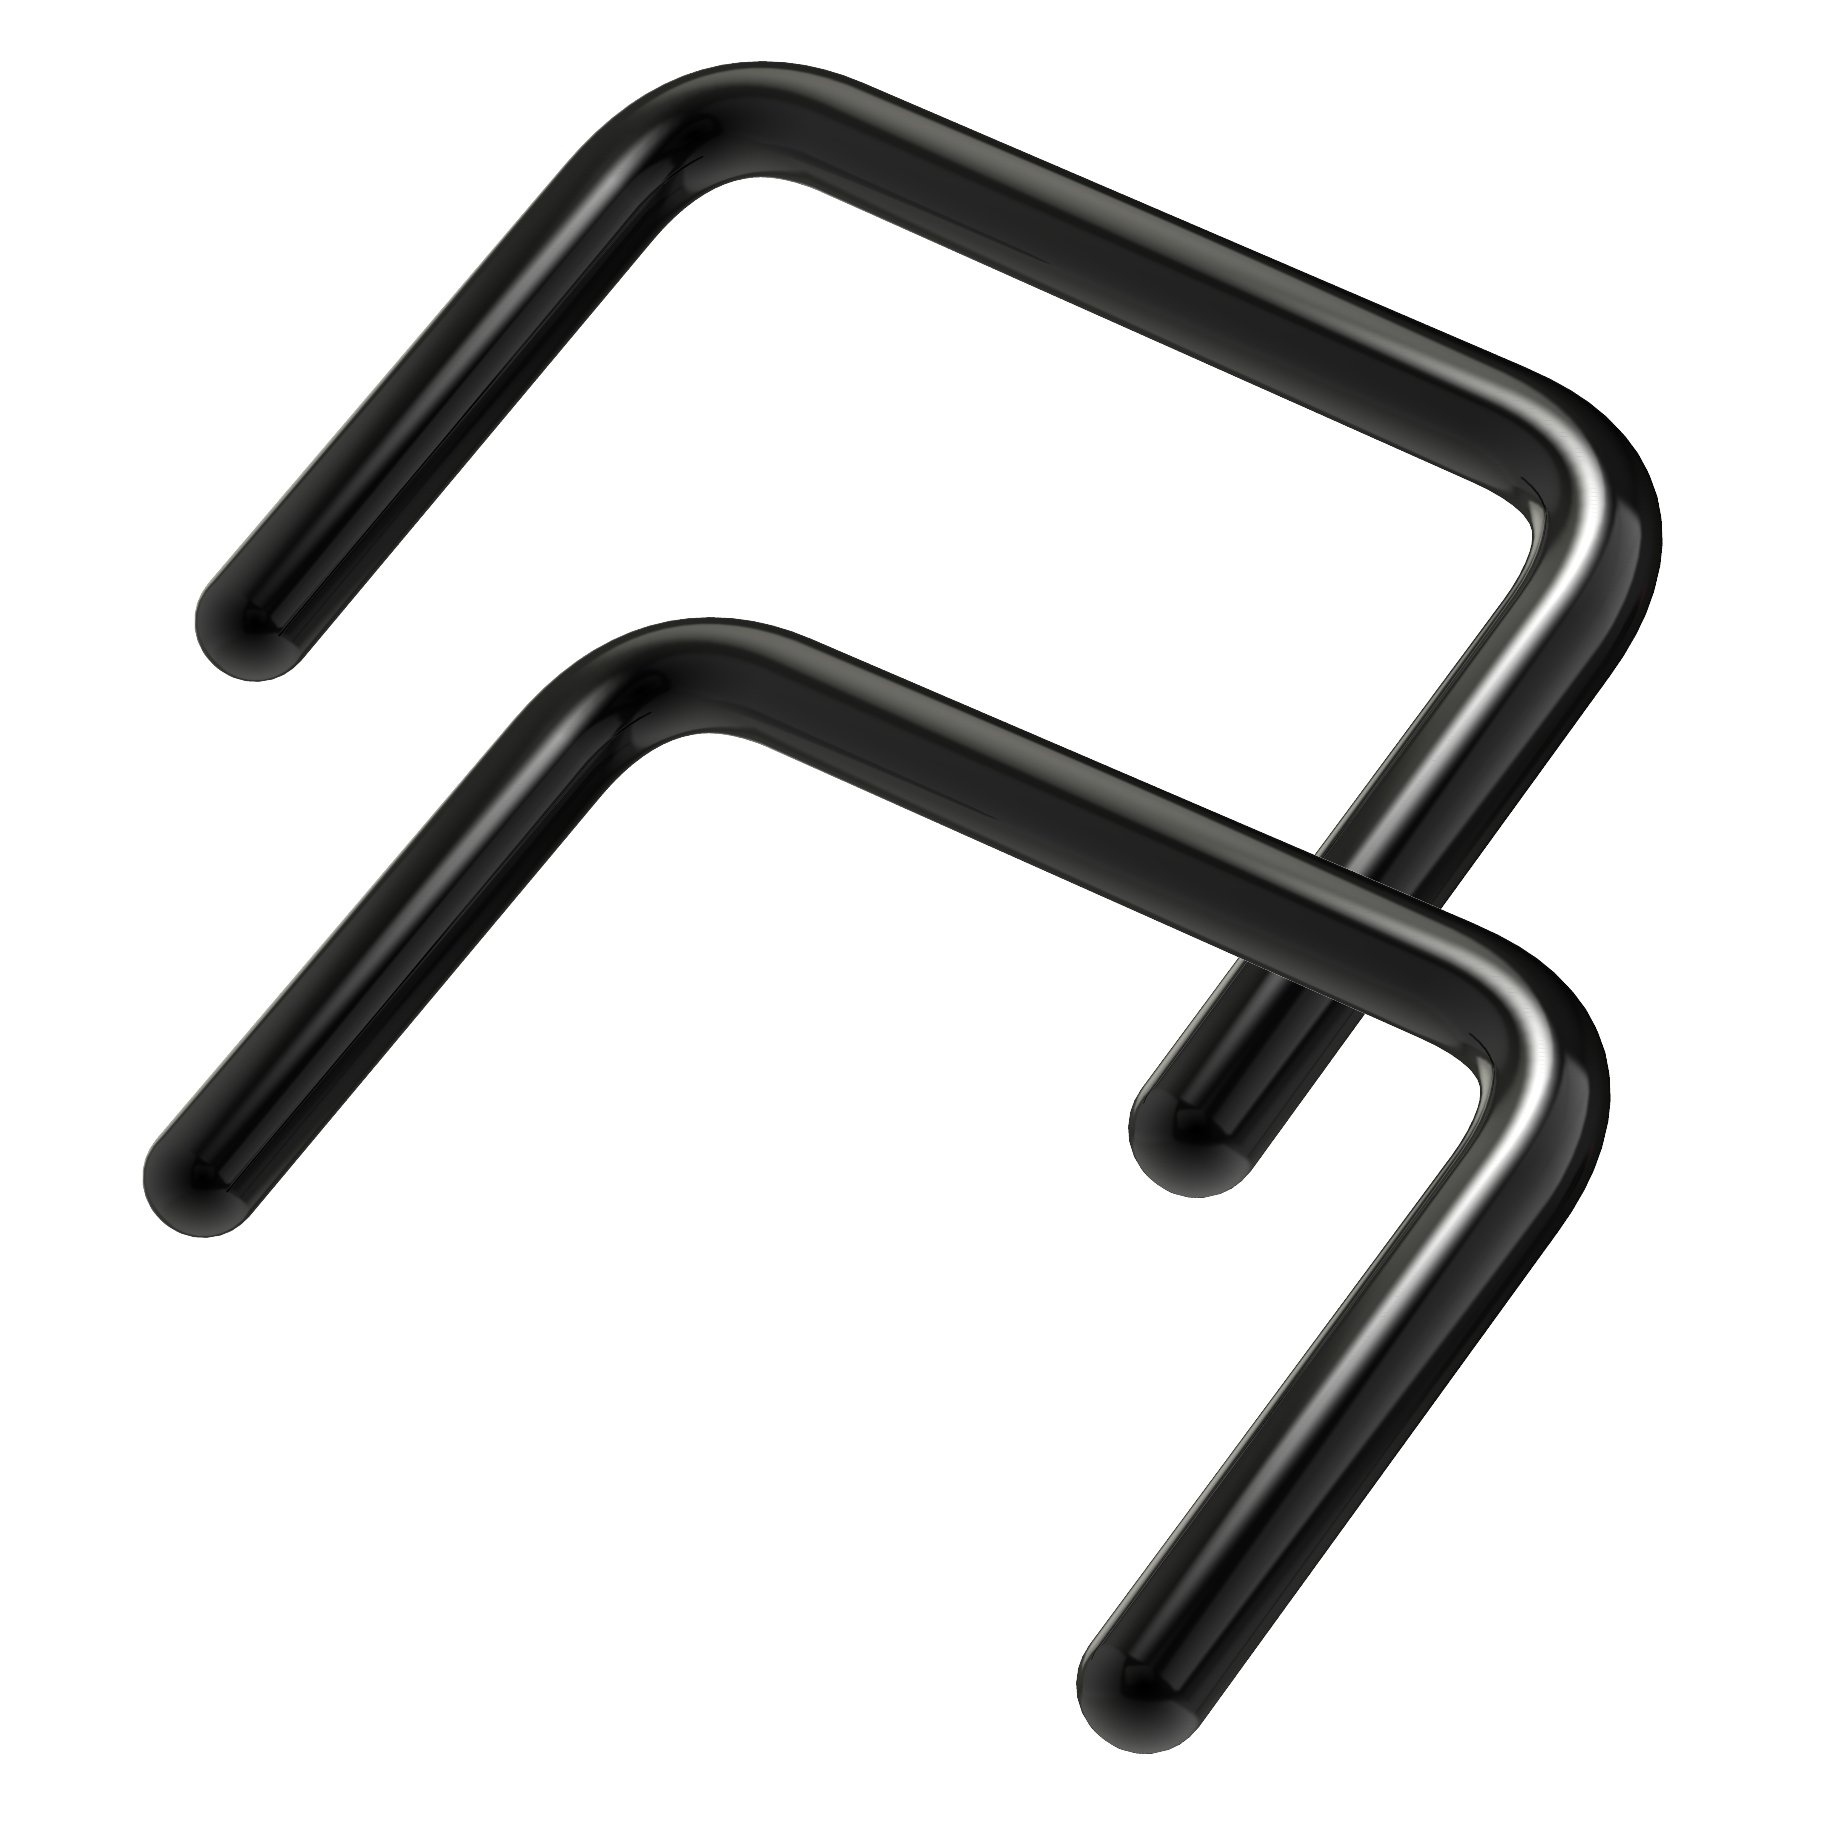 2pc PVD Black Septum Retainer 16g U-Shaped Piercing Ring 16 Gauge Staple Shape Jewelry 3/8 (10mm) by Bling Piercing